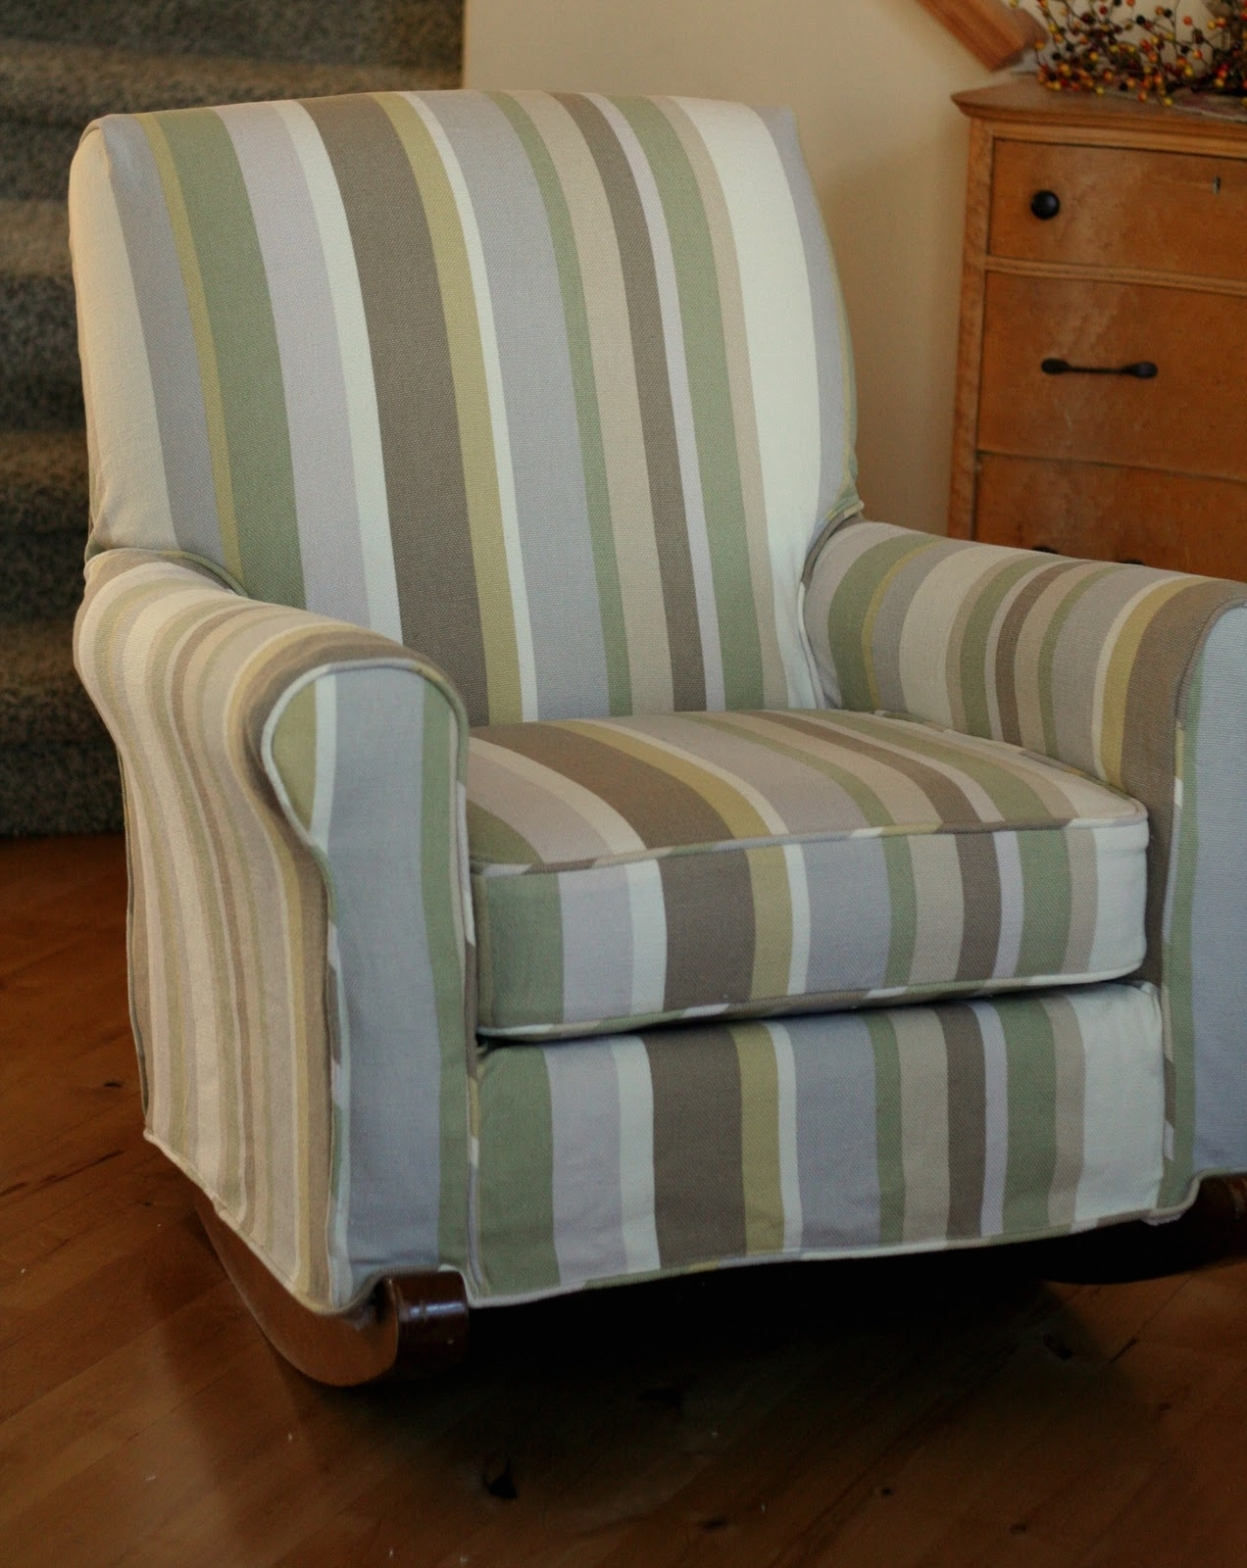 Table & Chair: Upholstered Rocking Chair Covers • Chair Covers Regarding Well Liked Upholstered Rocking Chairs (View 10 of 15)